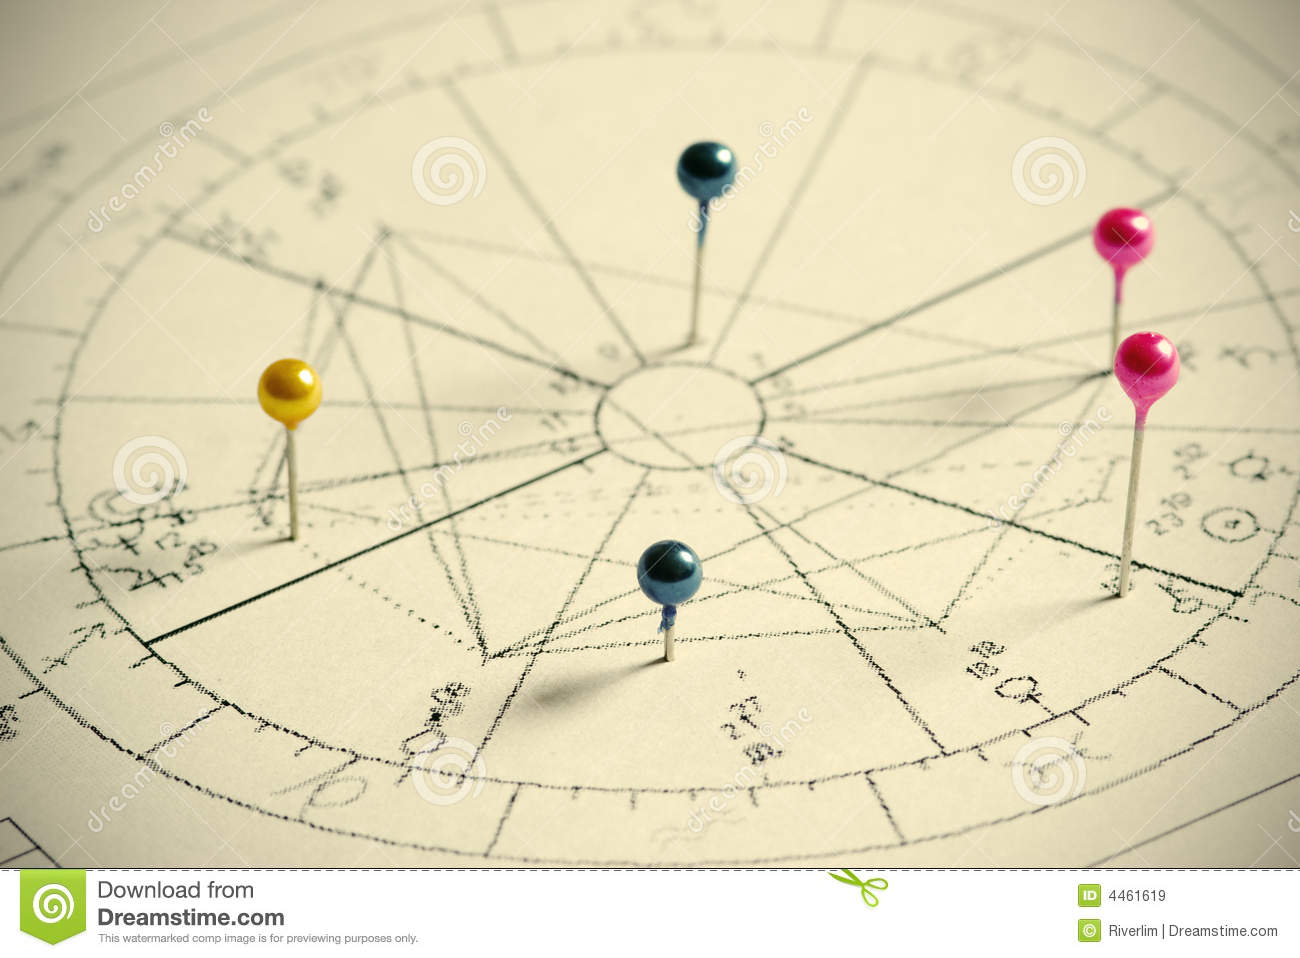 Astrology zodiac with natal chart zodiac signs houses and plan natal chart royalty free stock images geenschuldenfo Gallery